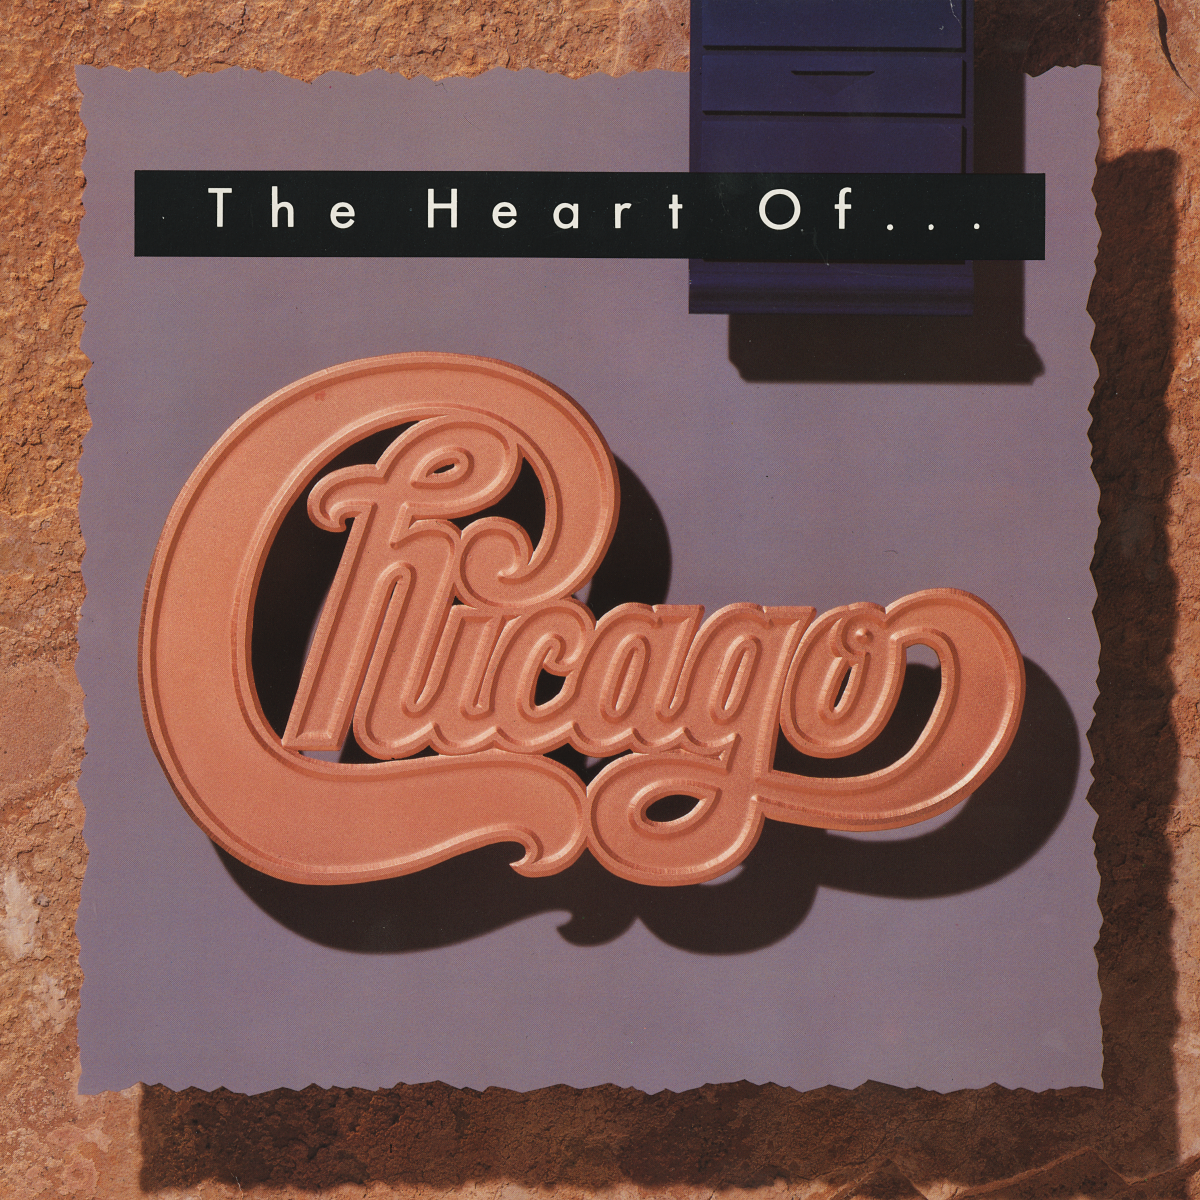 Chicago The Heart Of Chicago Vinyl Album Covers Com